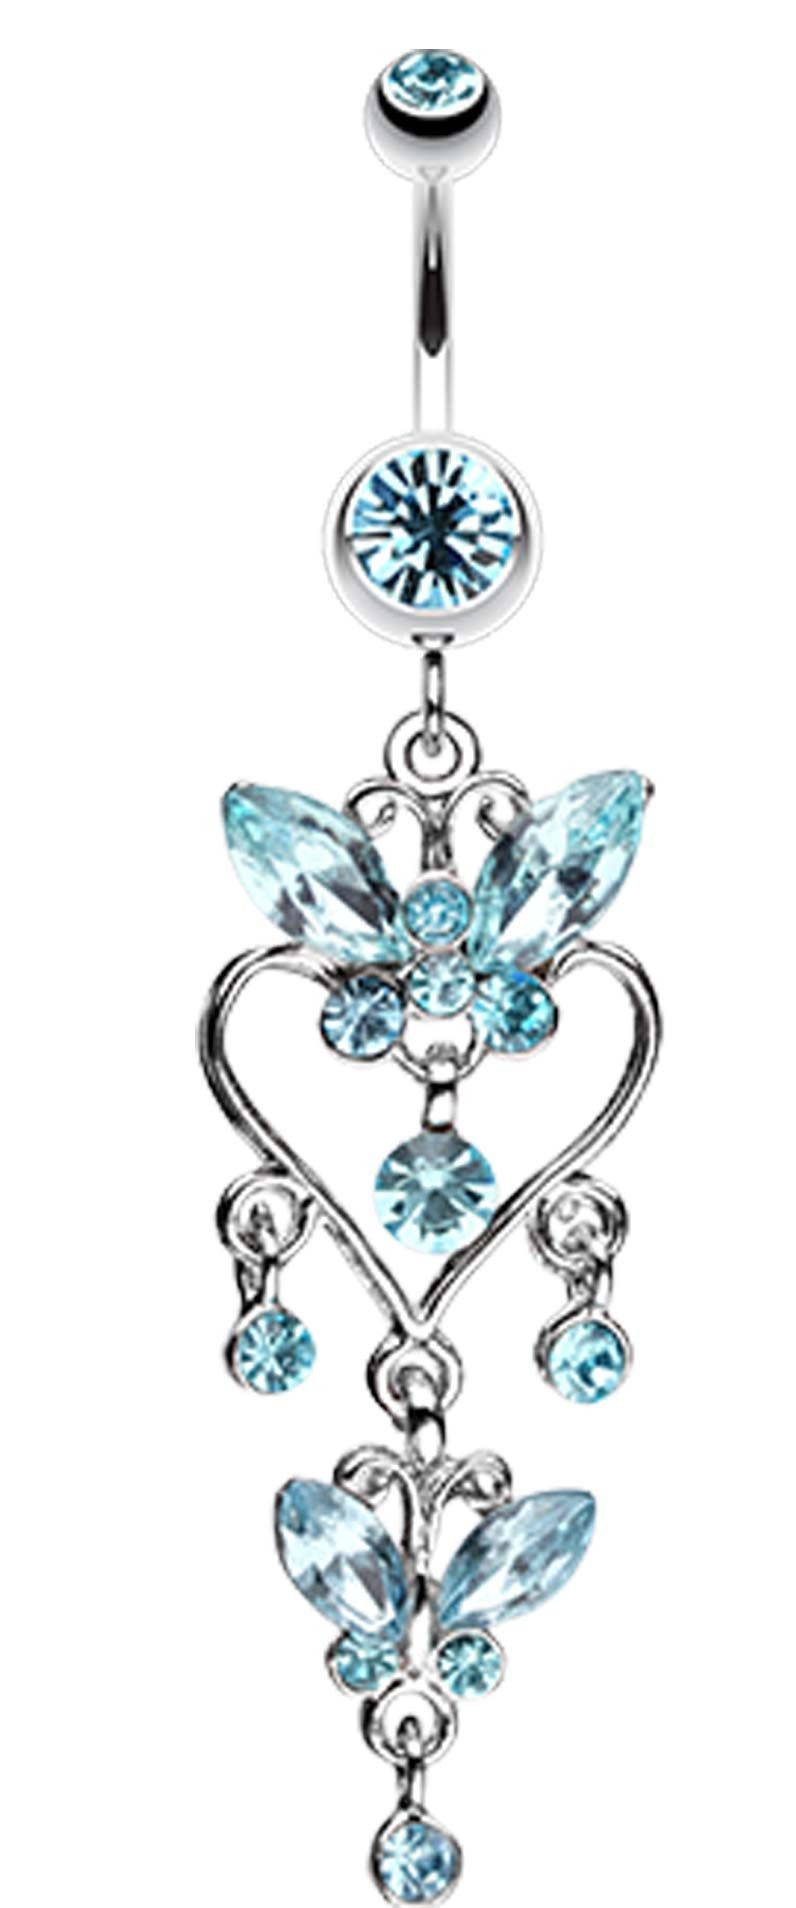 Butterfly Extravagance Belly Button Ring  Rings, Belly -1399